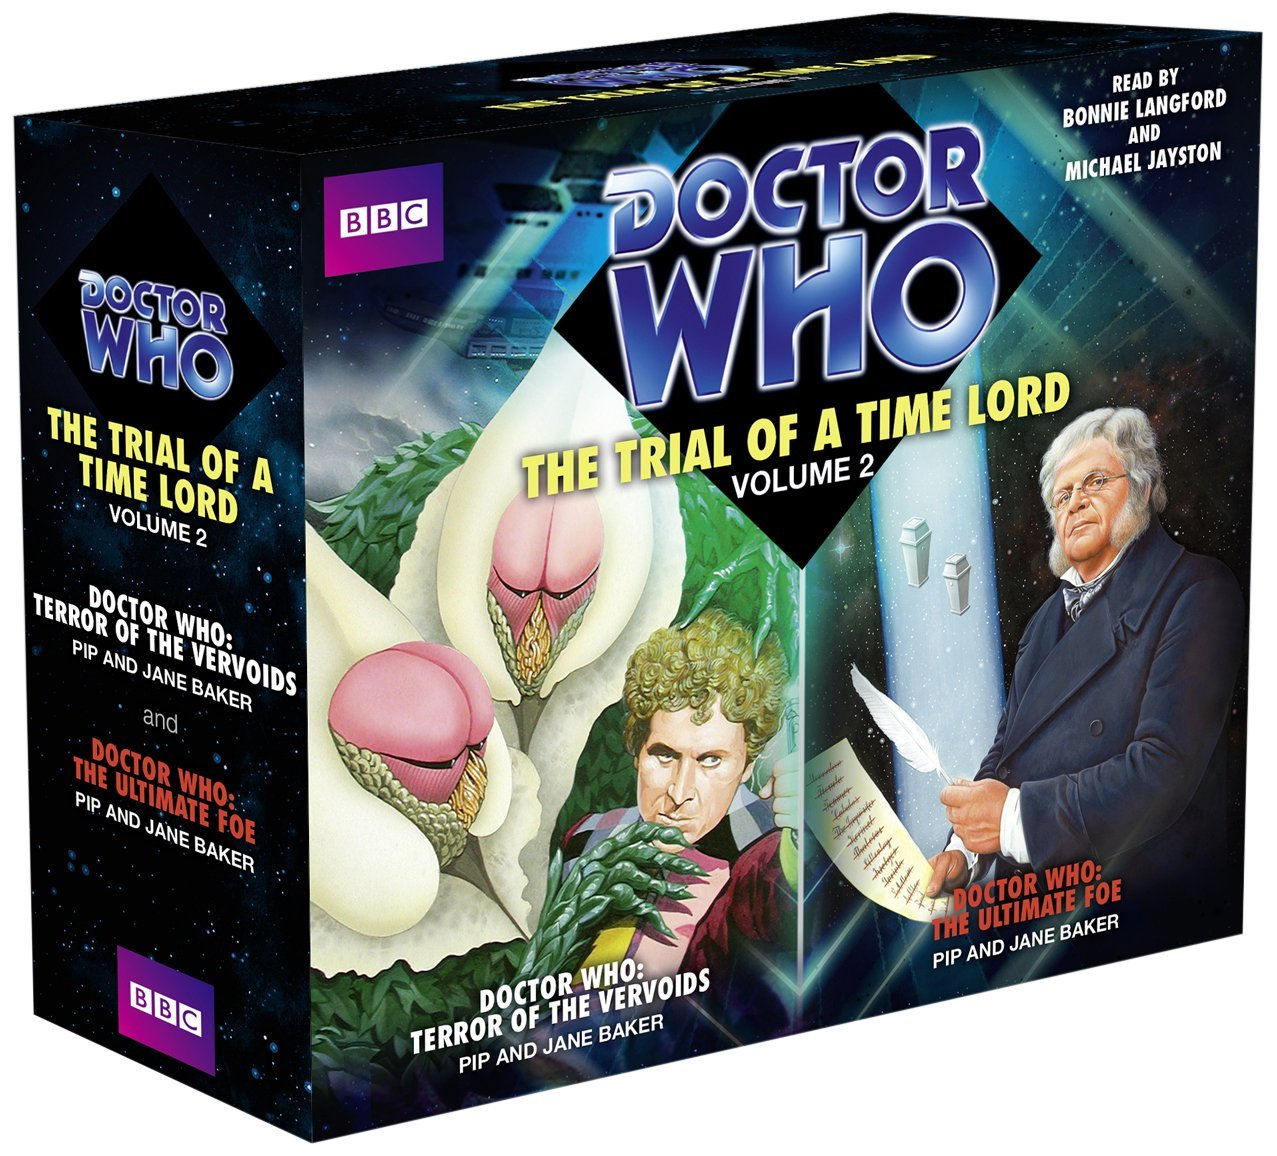 The Trial of a Time Lord (Volume Two) (Credit: AudioGo)